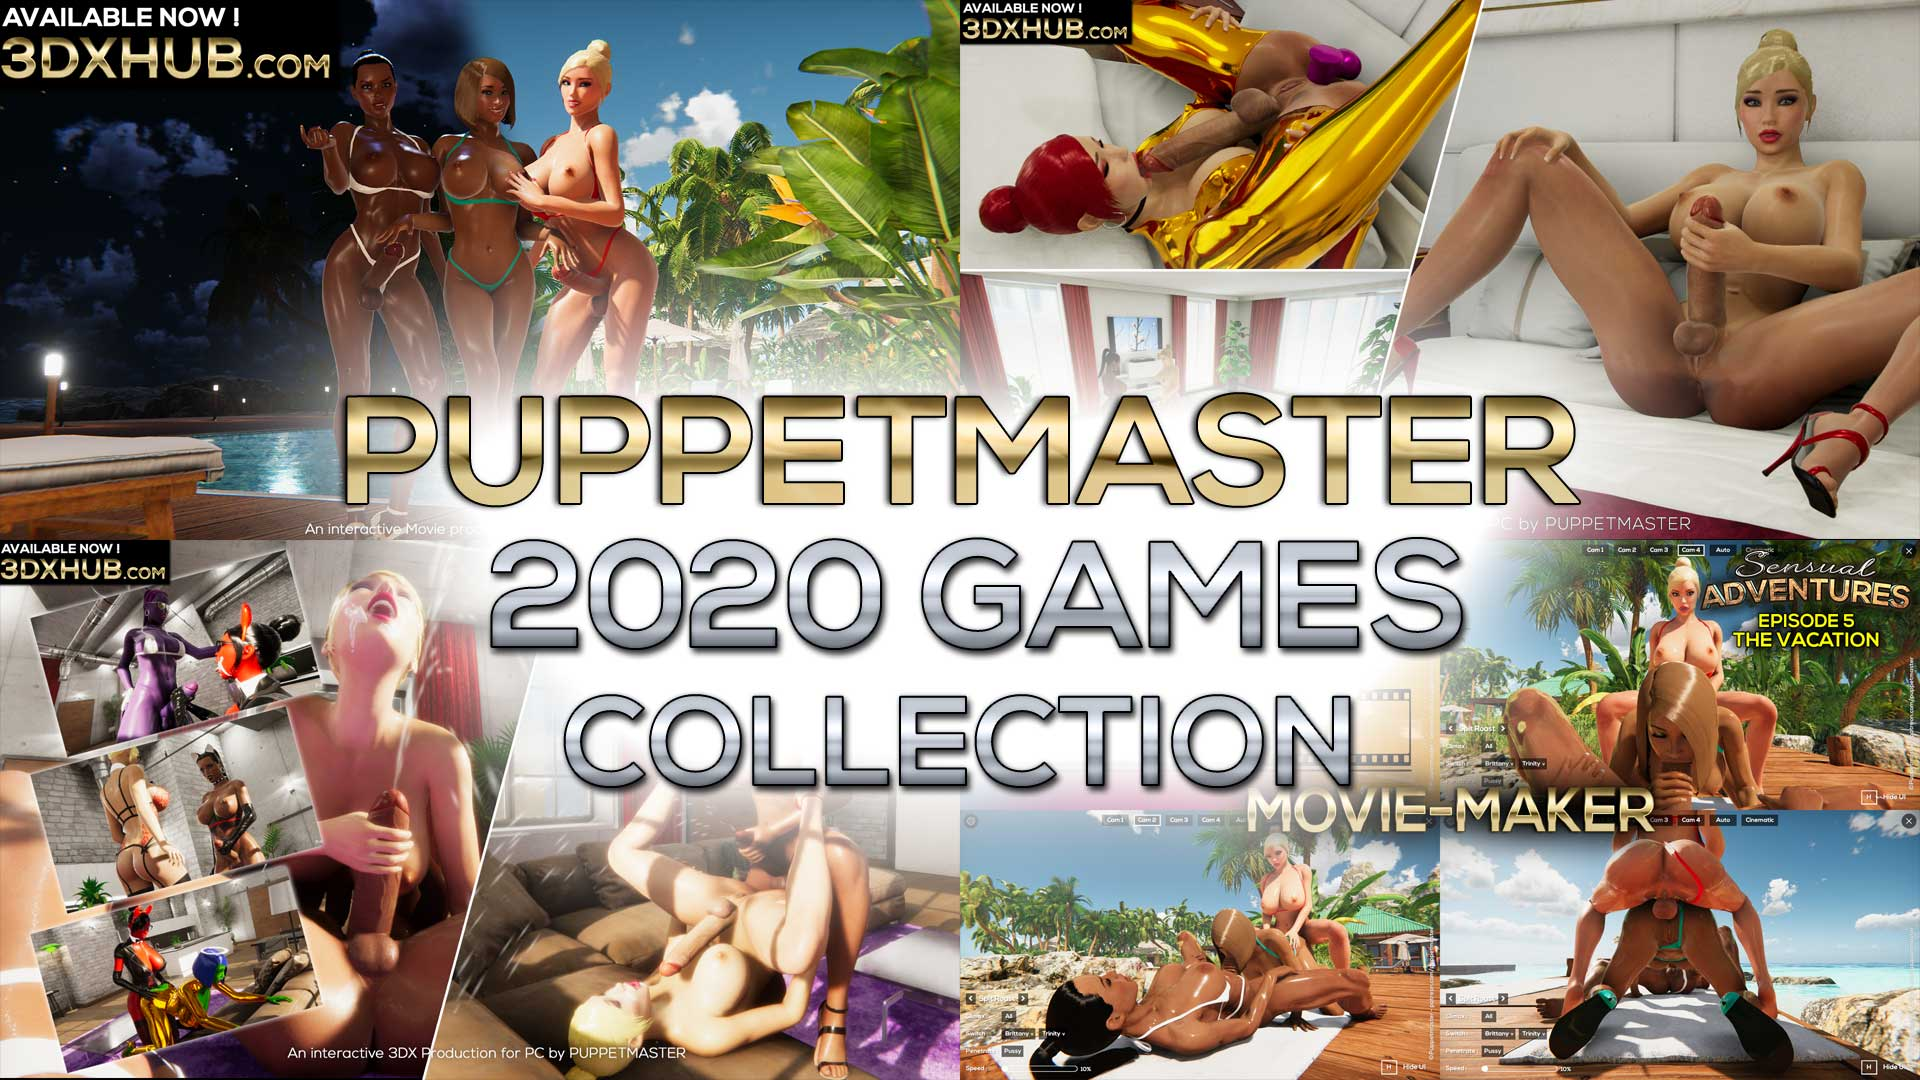 Bundle: Puppetmaster 2020 Games Collection